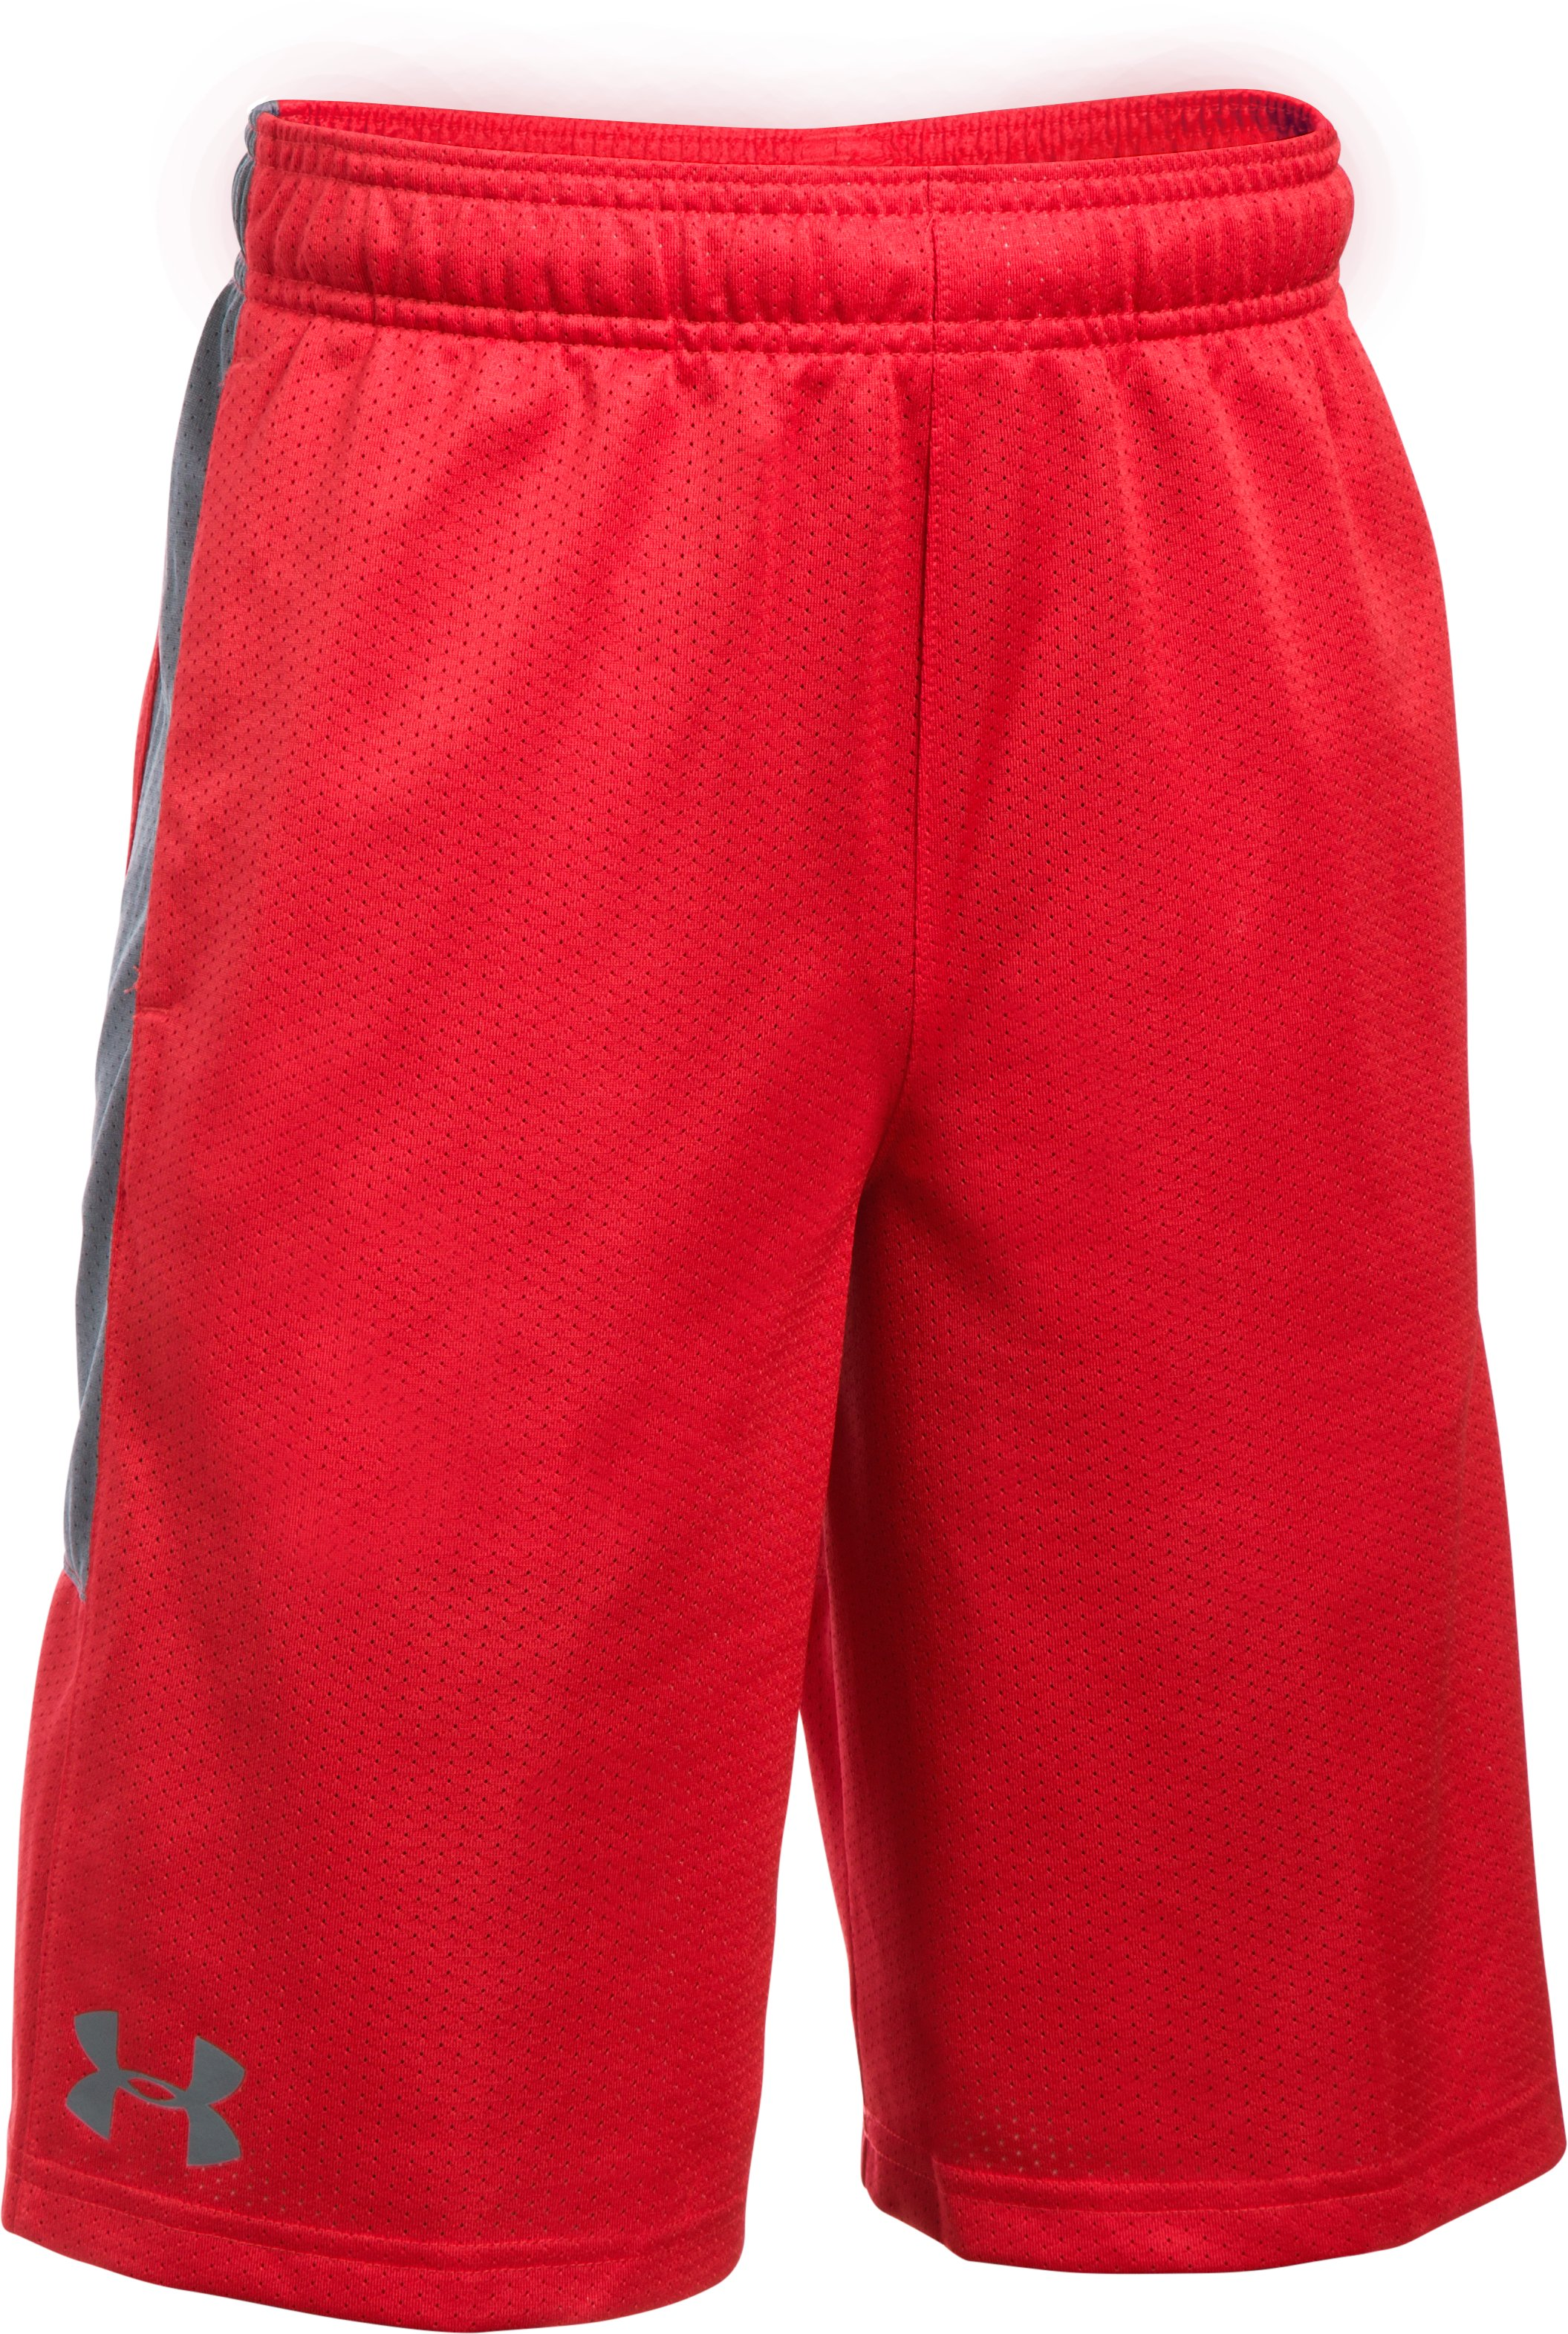 Boys' UA Instinct Mesh Shorts, Red